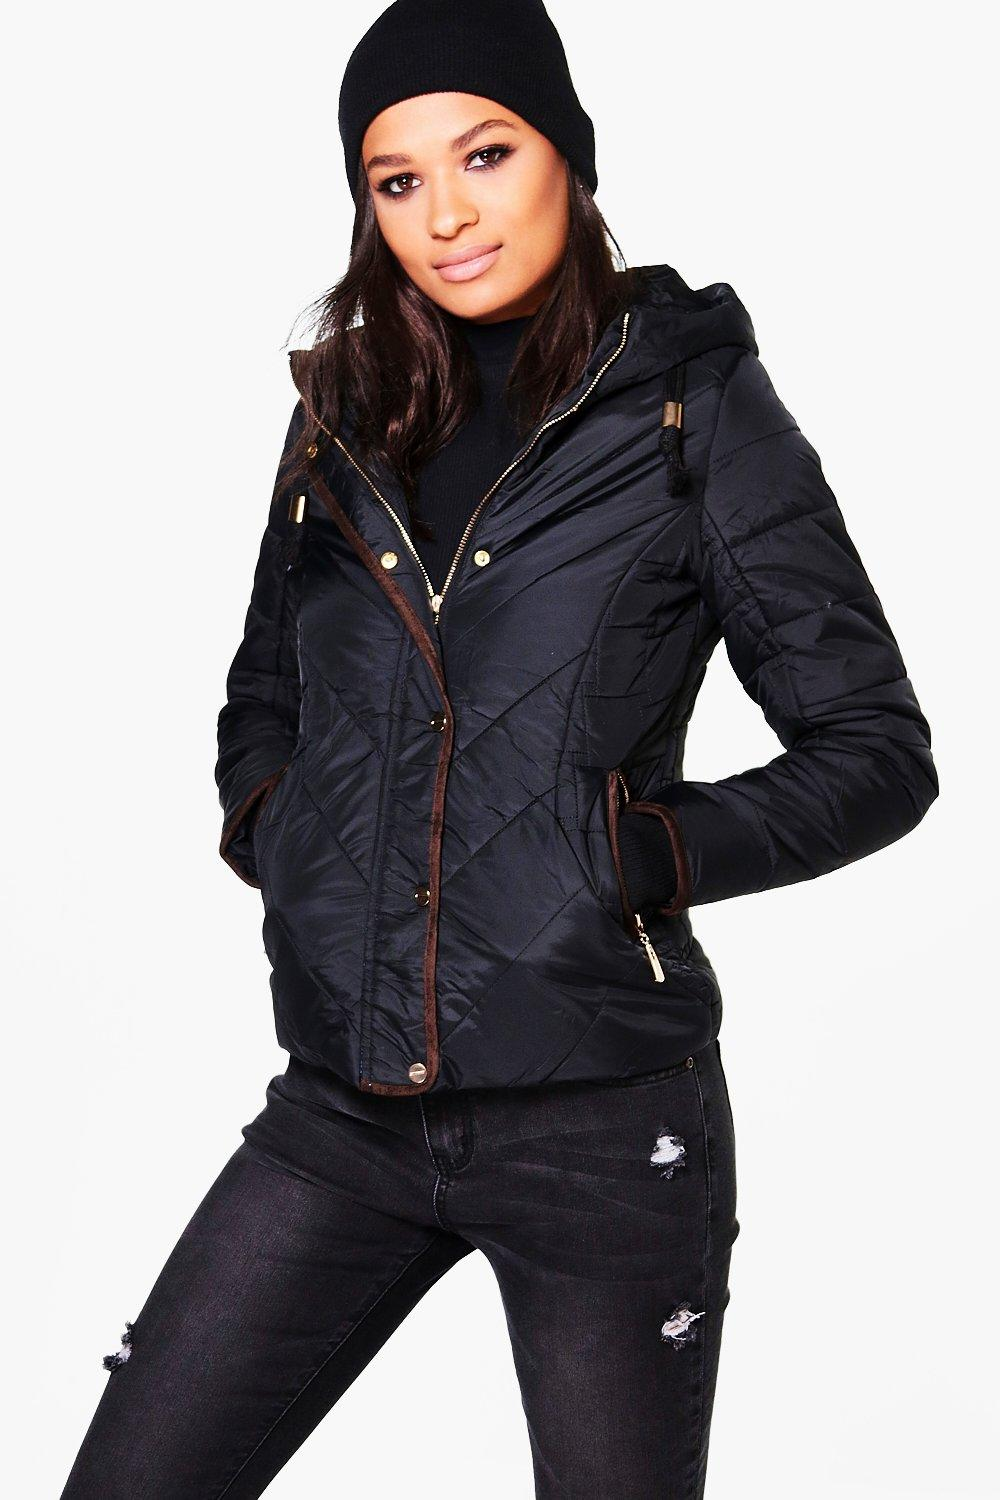 Padded Hooded Jacket With Faux Fur Lining - black Review thumbnail